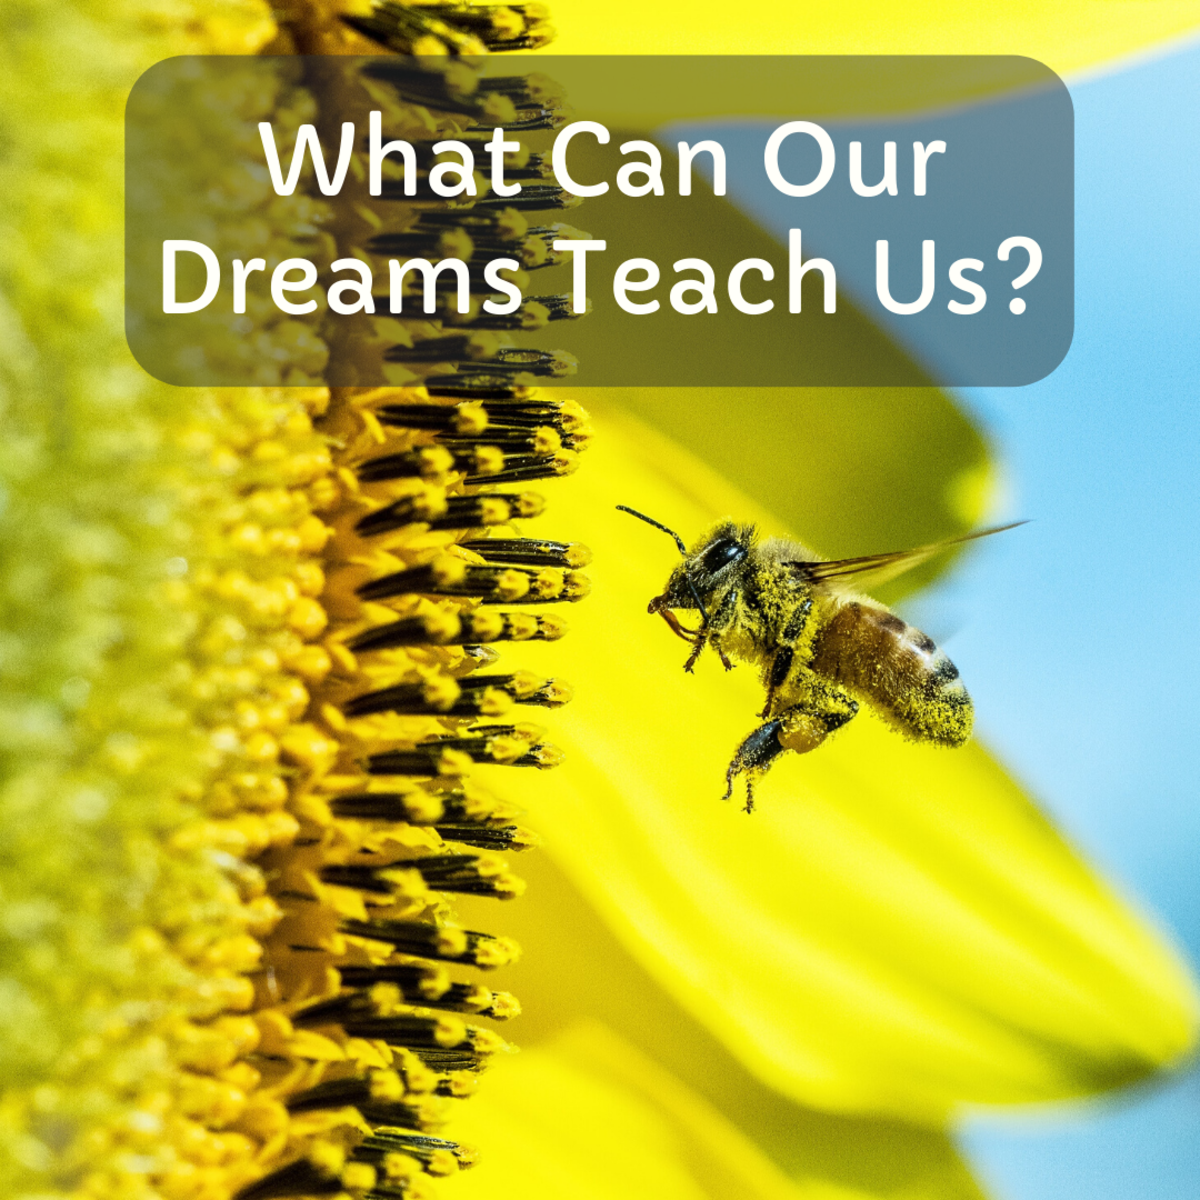 We can apply much of what we learn from our dreams to our daily lives.